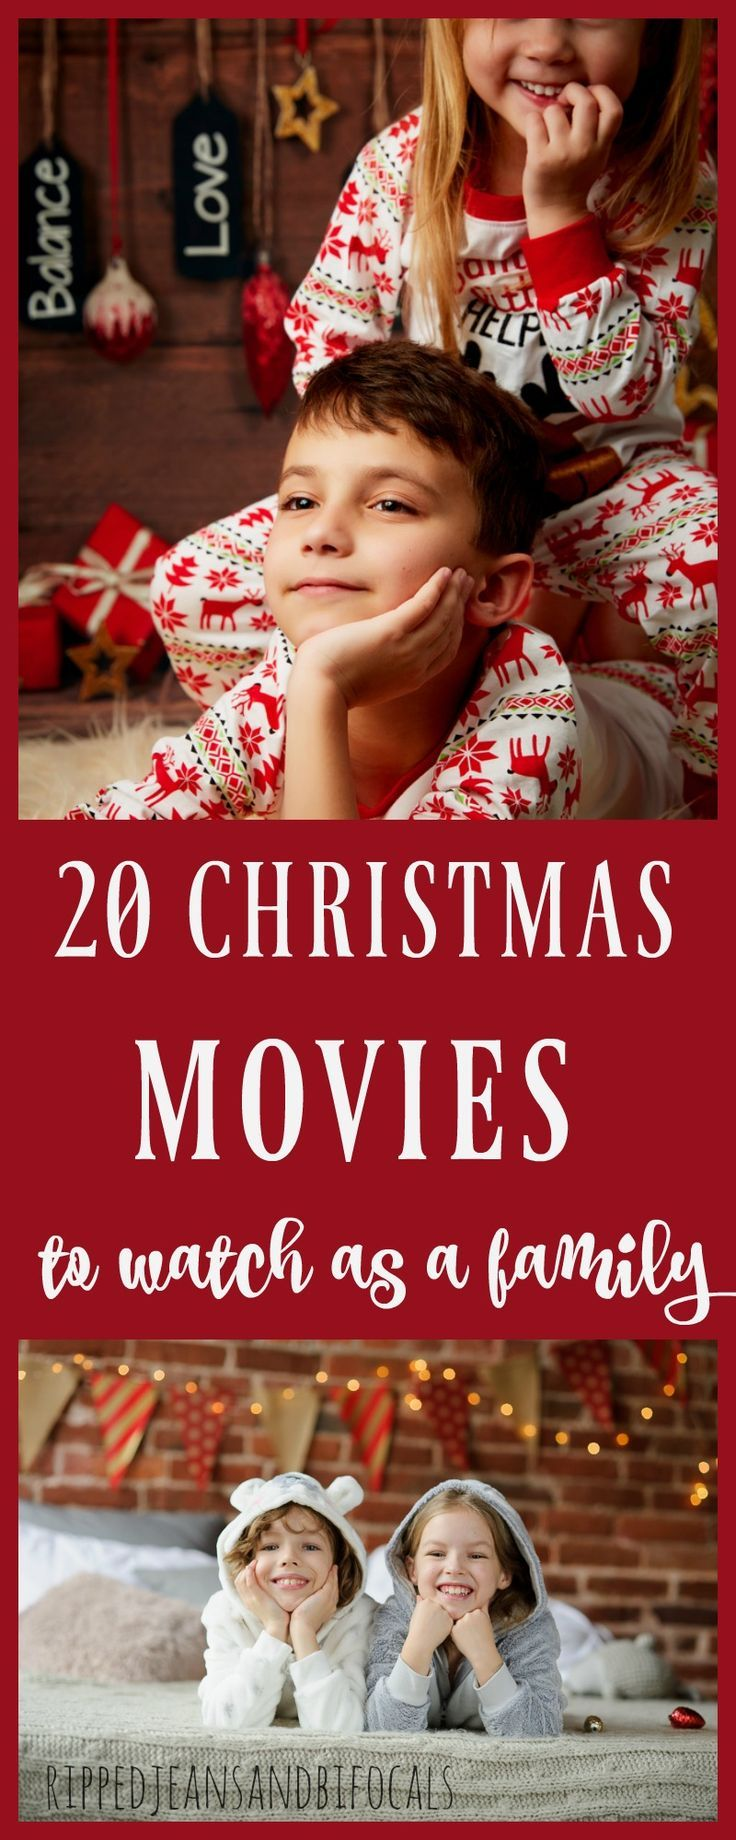 20 Christmas Movies You Need To Watch With Your Family Now